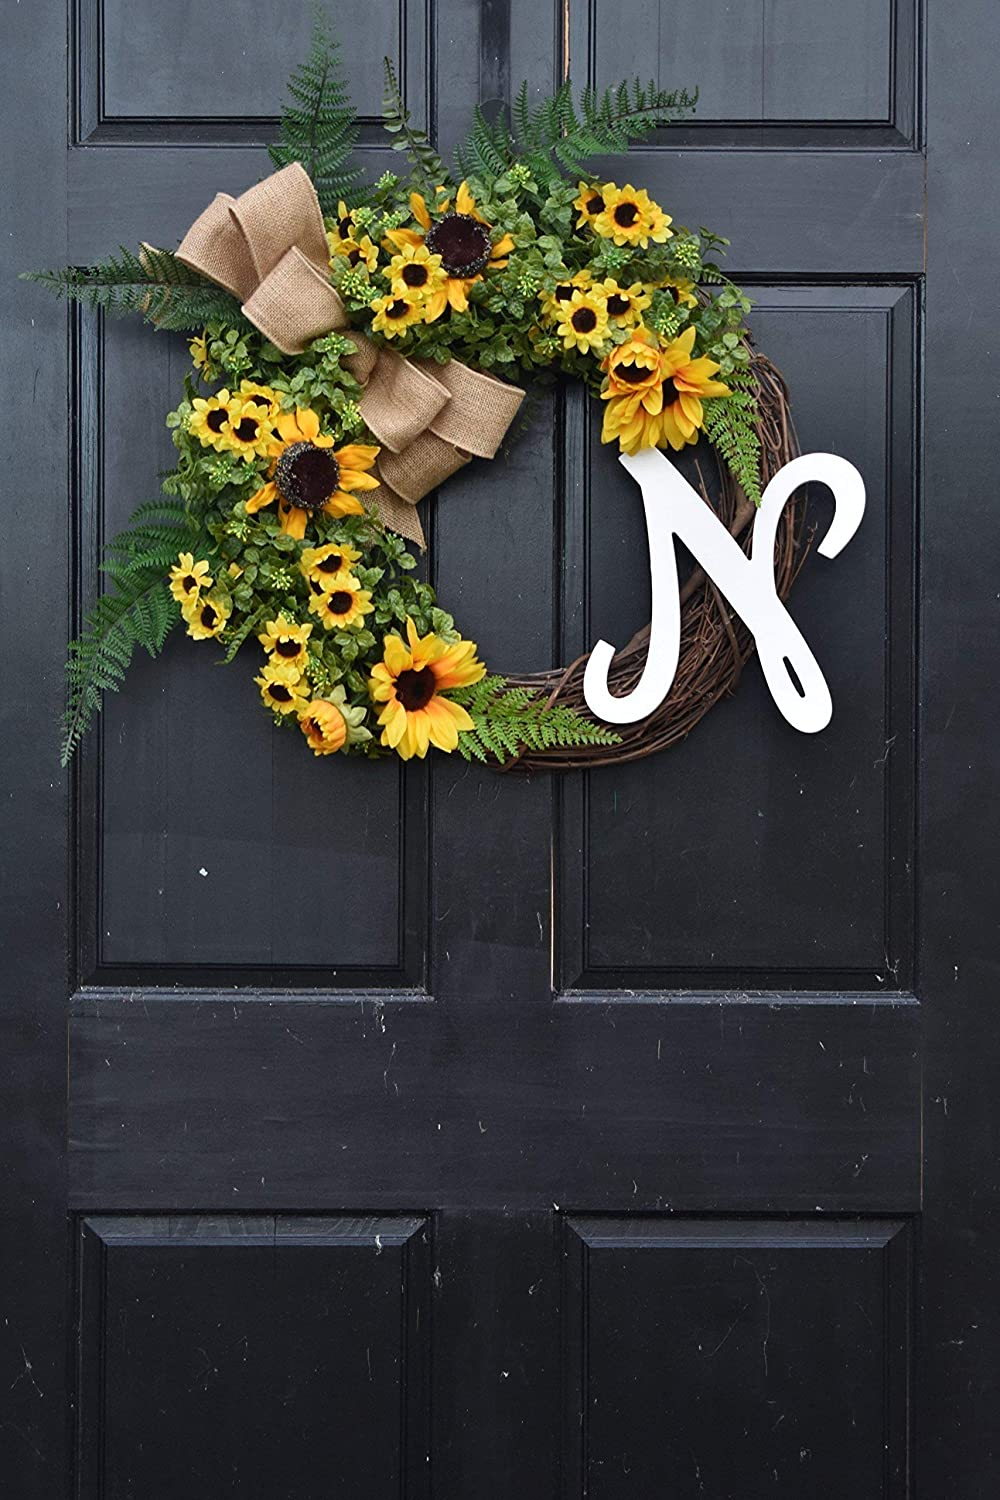 Personalized Yellow Sunflower and Boxwood Spring Summer Monogram Wreath for Front Door Decor; Year Round Faux Greenery Porch Decoration with Ferns and Burlap Bow; Initial Letter Choice